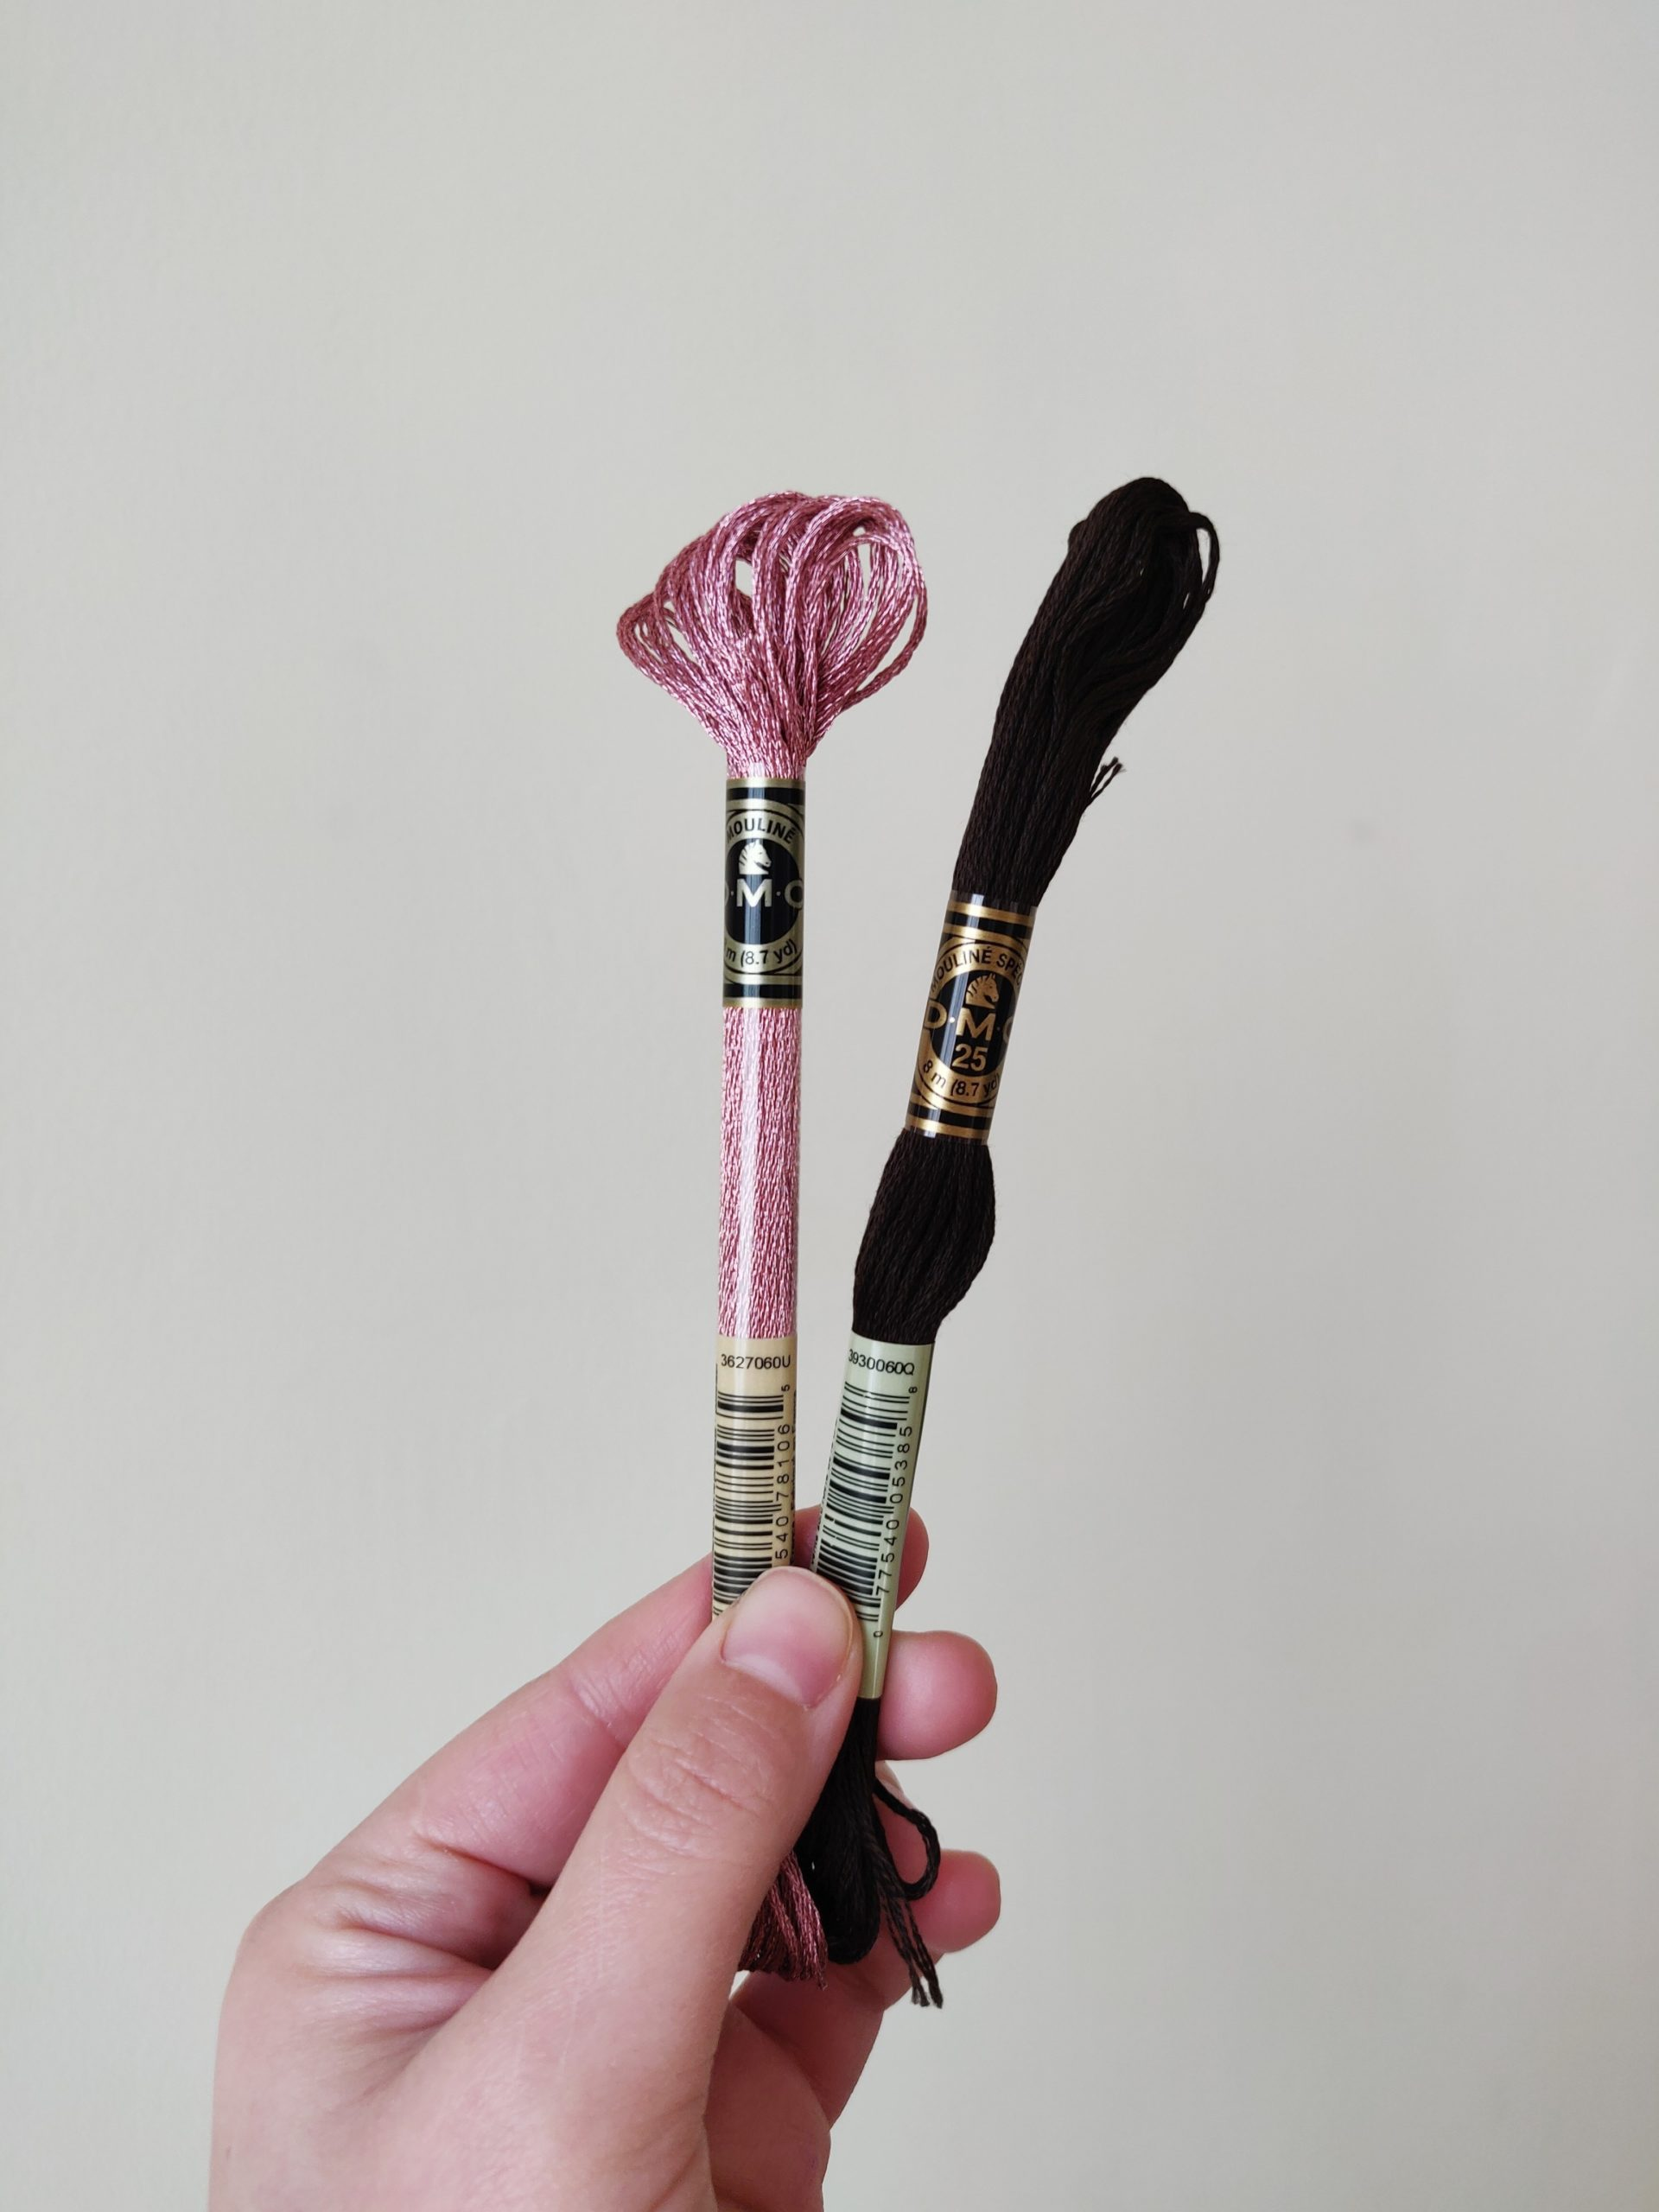 Pink metallic and black/brown embroidery thread.